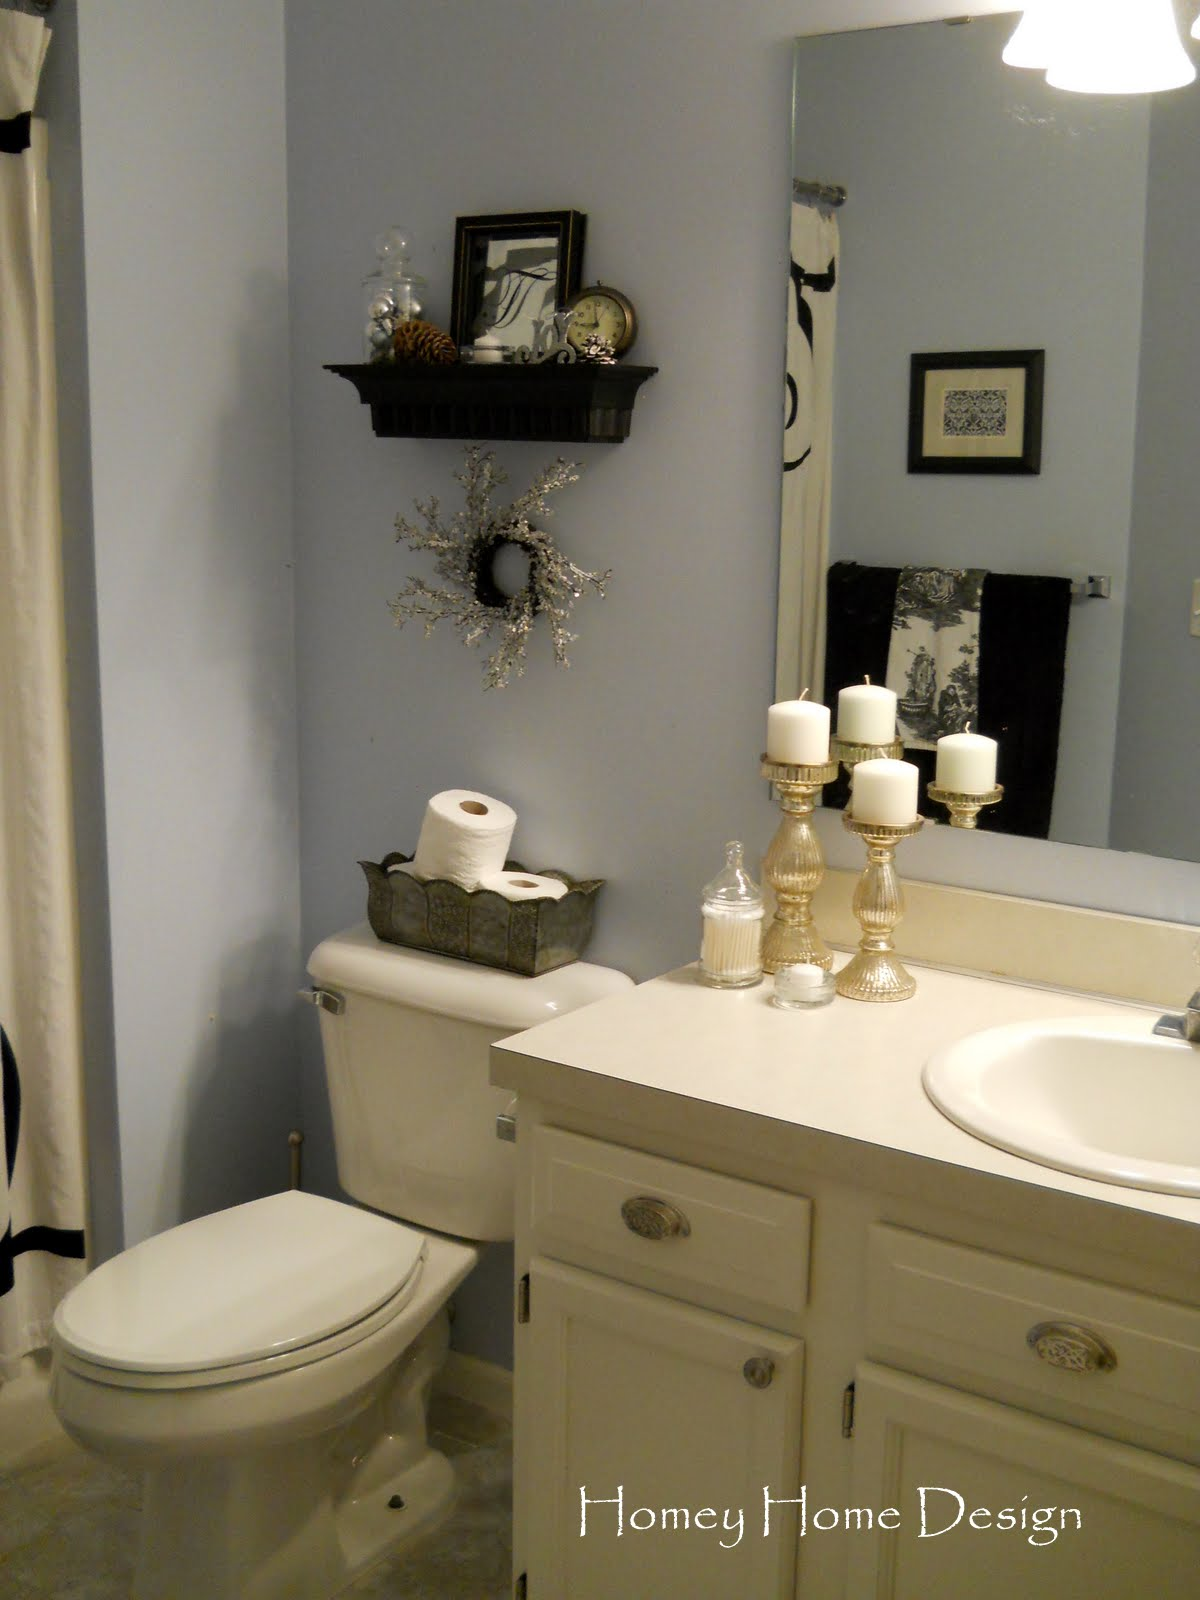 Homey home design christmas in the bathroom for Decoration toilette